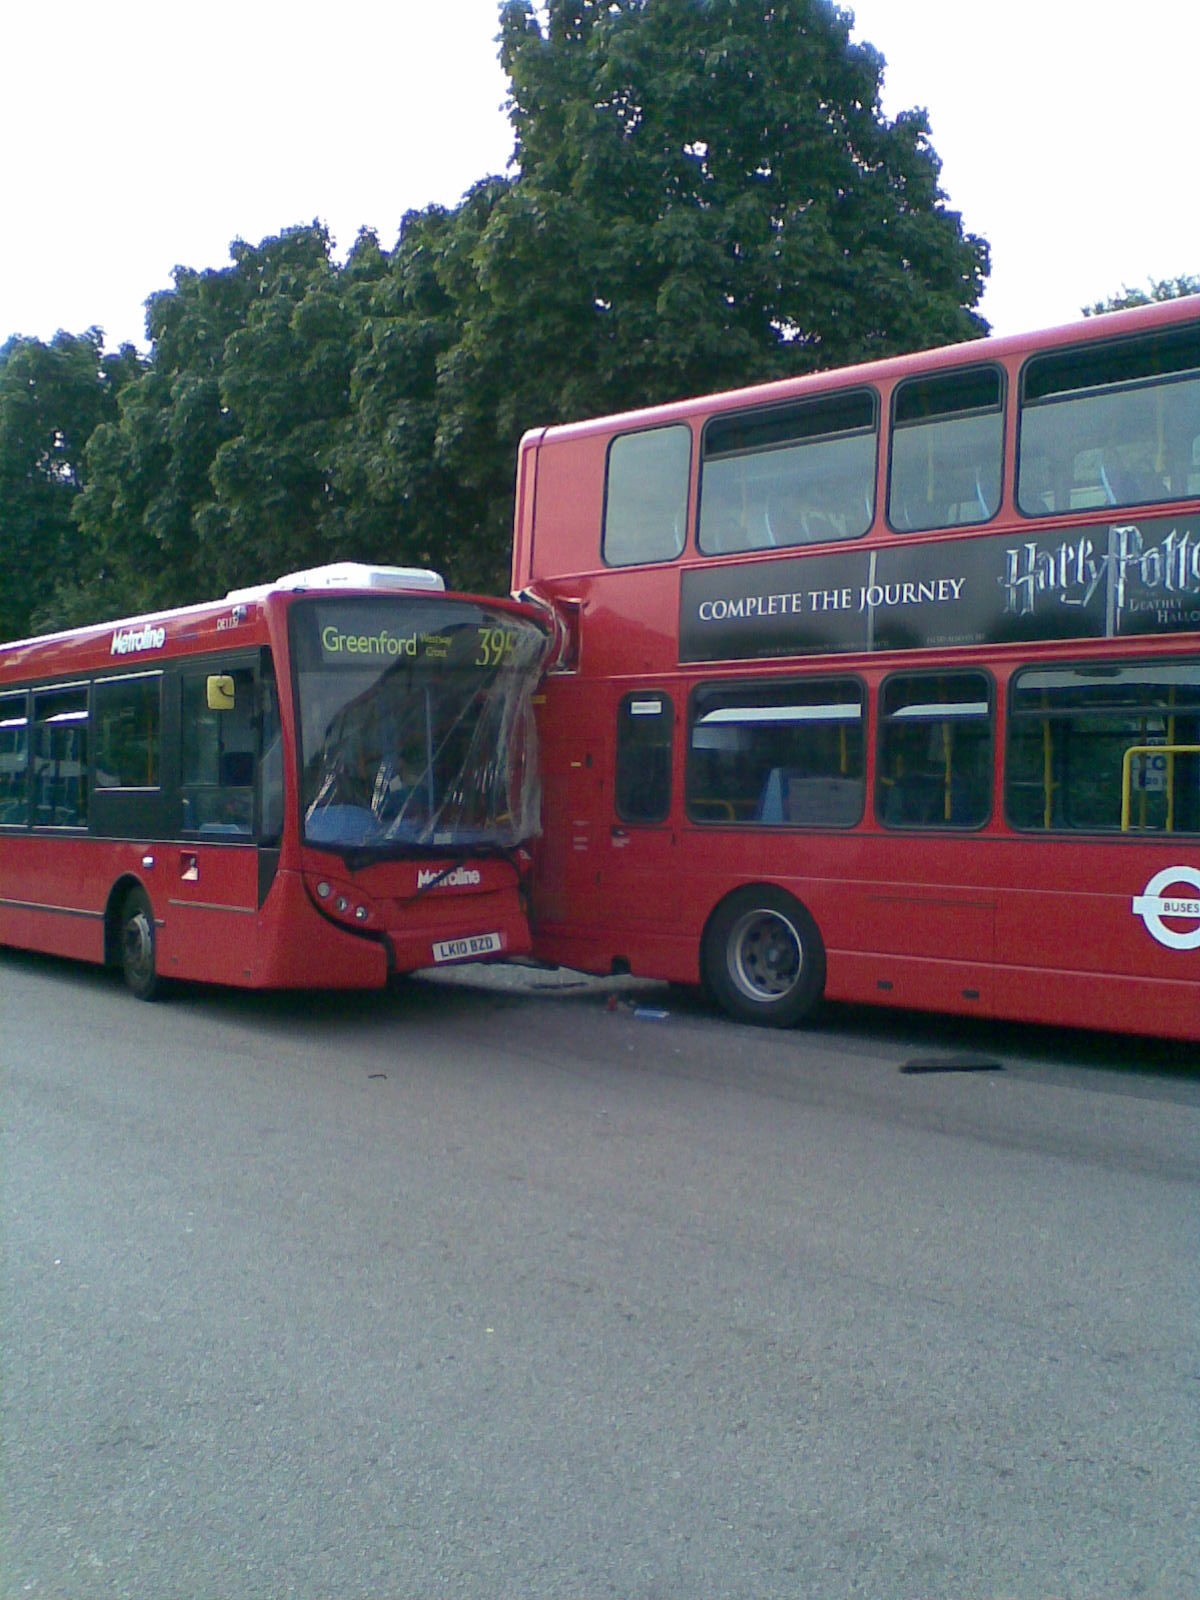 6004496933 9506a5125a o BUS FAIL!! Funny Picture